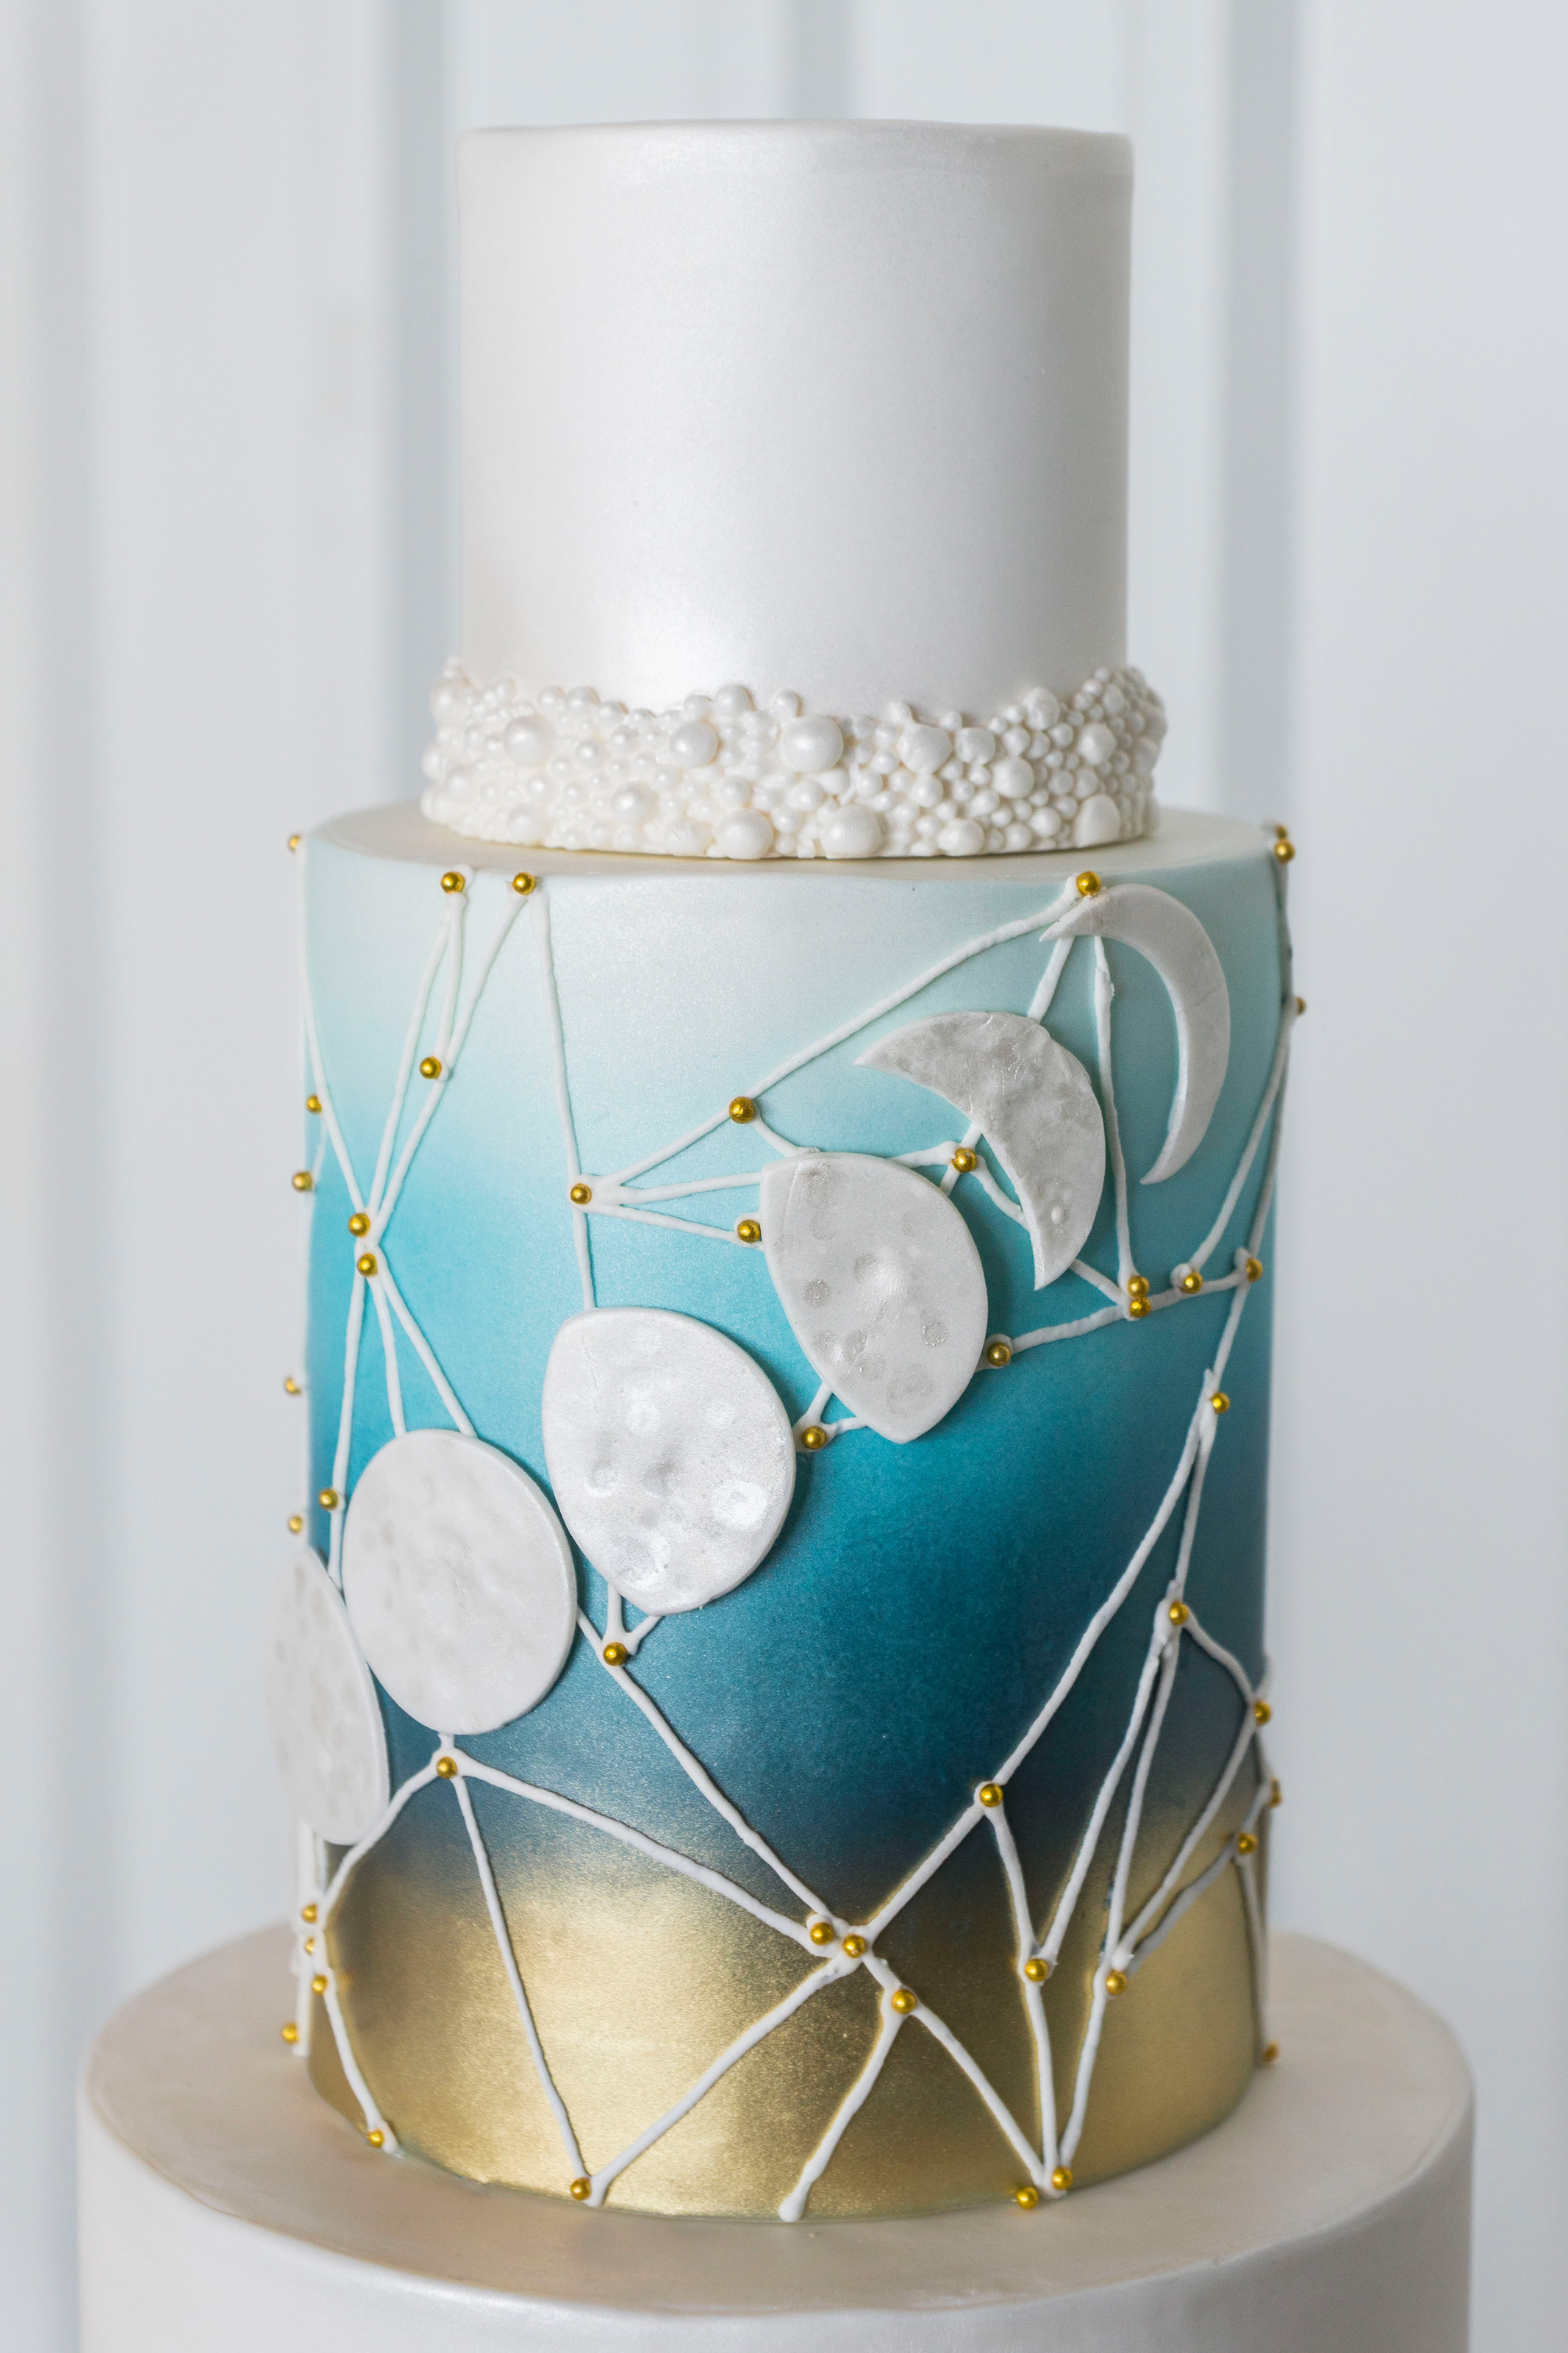 moon phase wedding cake.jpg